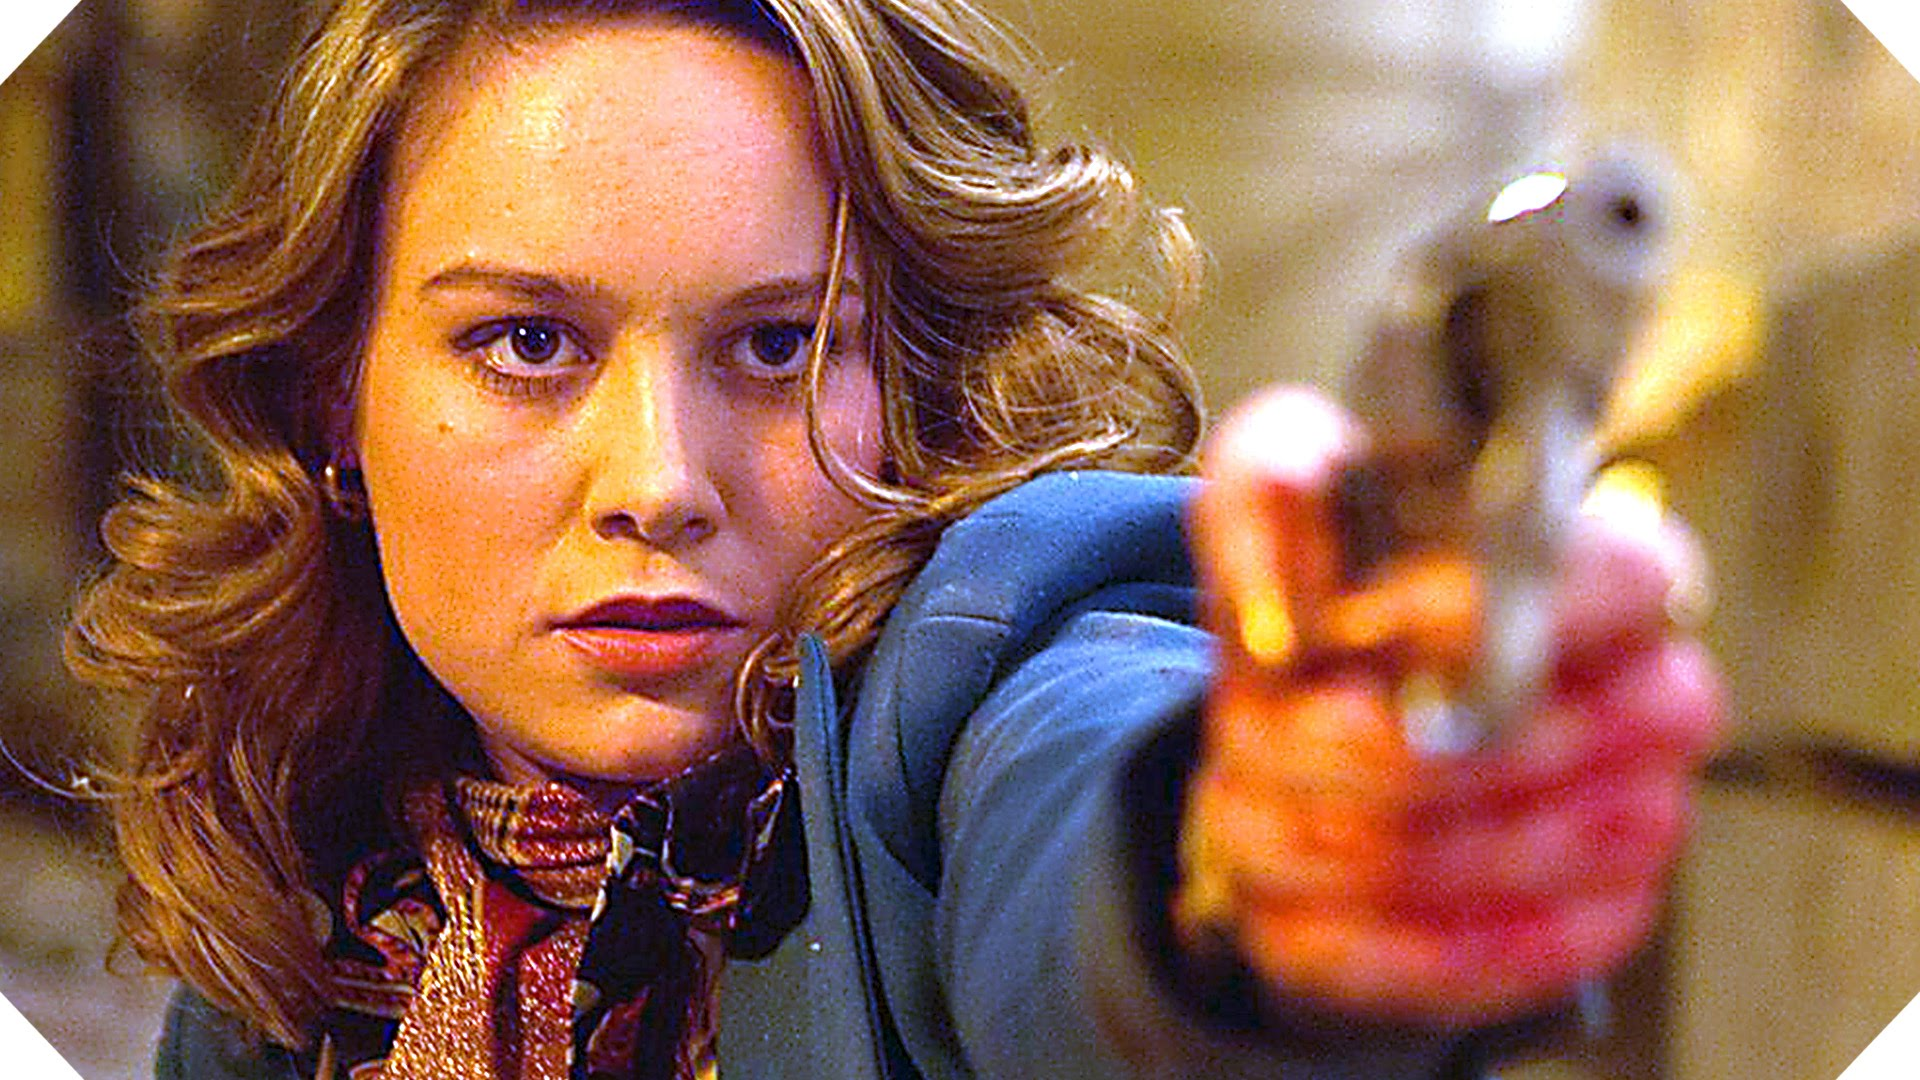 Brie Larson Free Fire movie